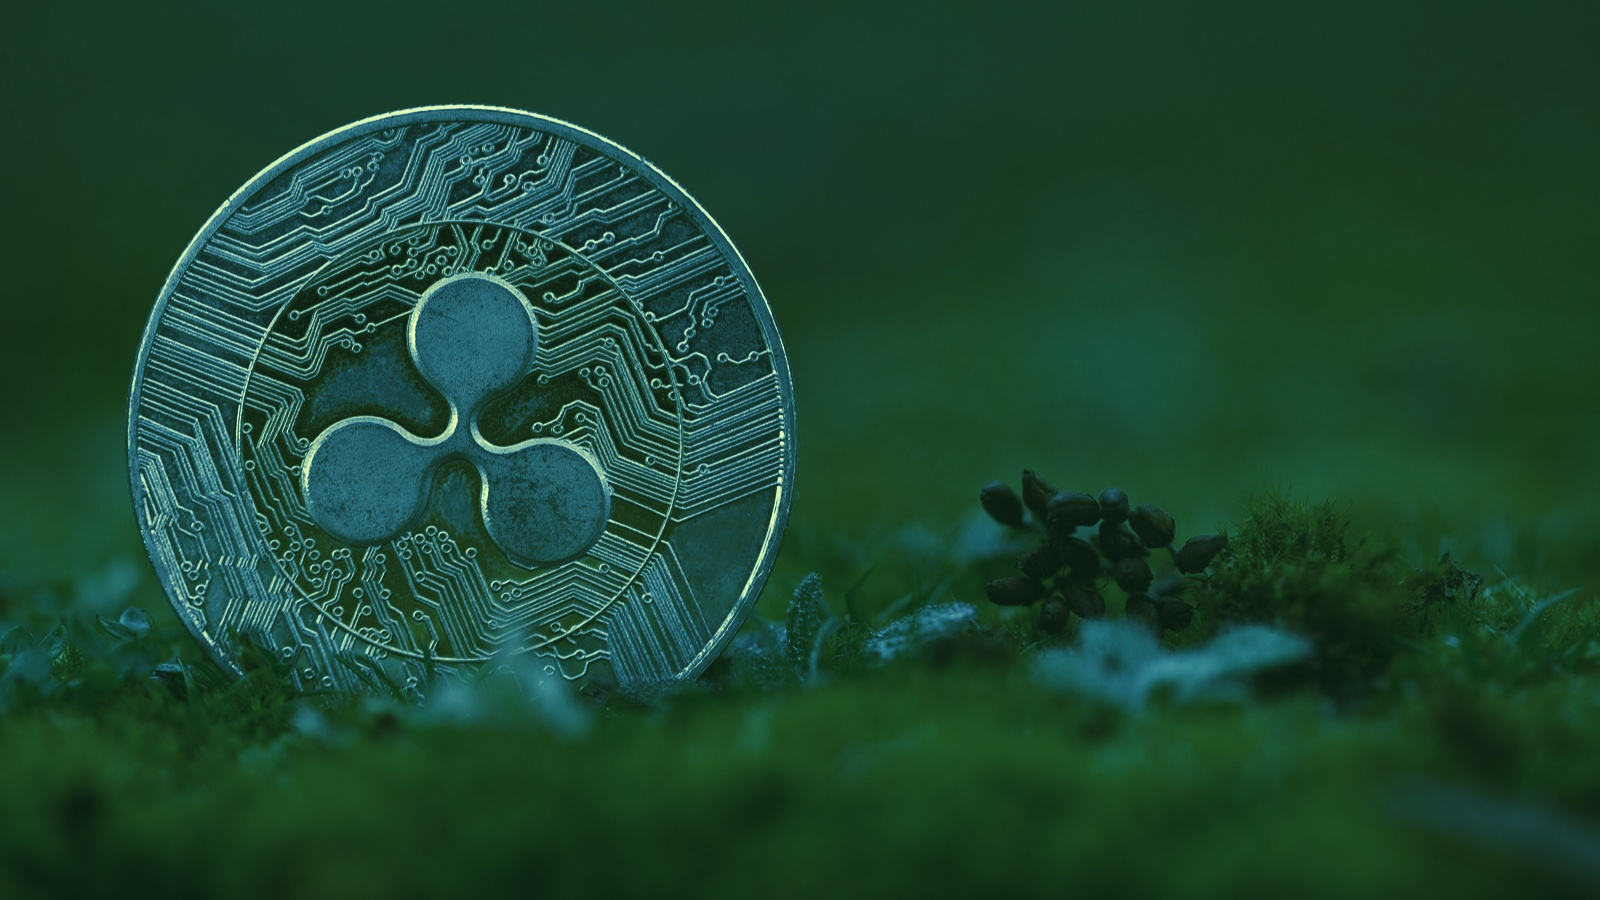 Ripple Joins NFT Boom With Launch of $250M Creator Fund